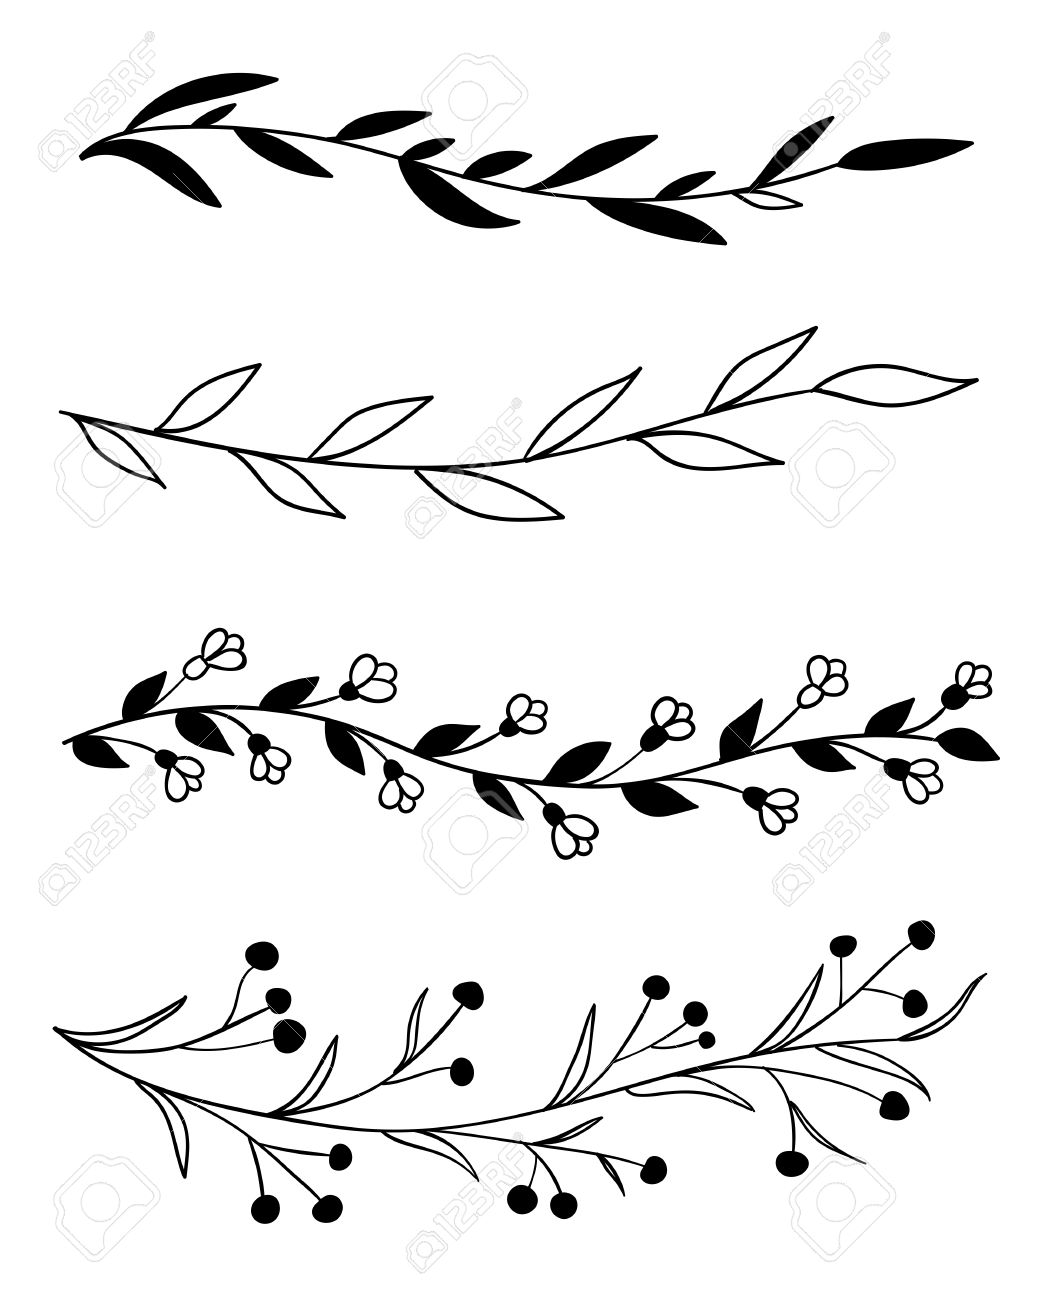 1043x1300 Set Of 4 Hand Drawn Borders With Leaves, Flowers And Berries